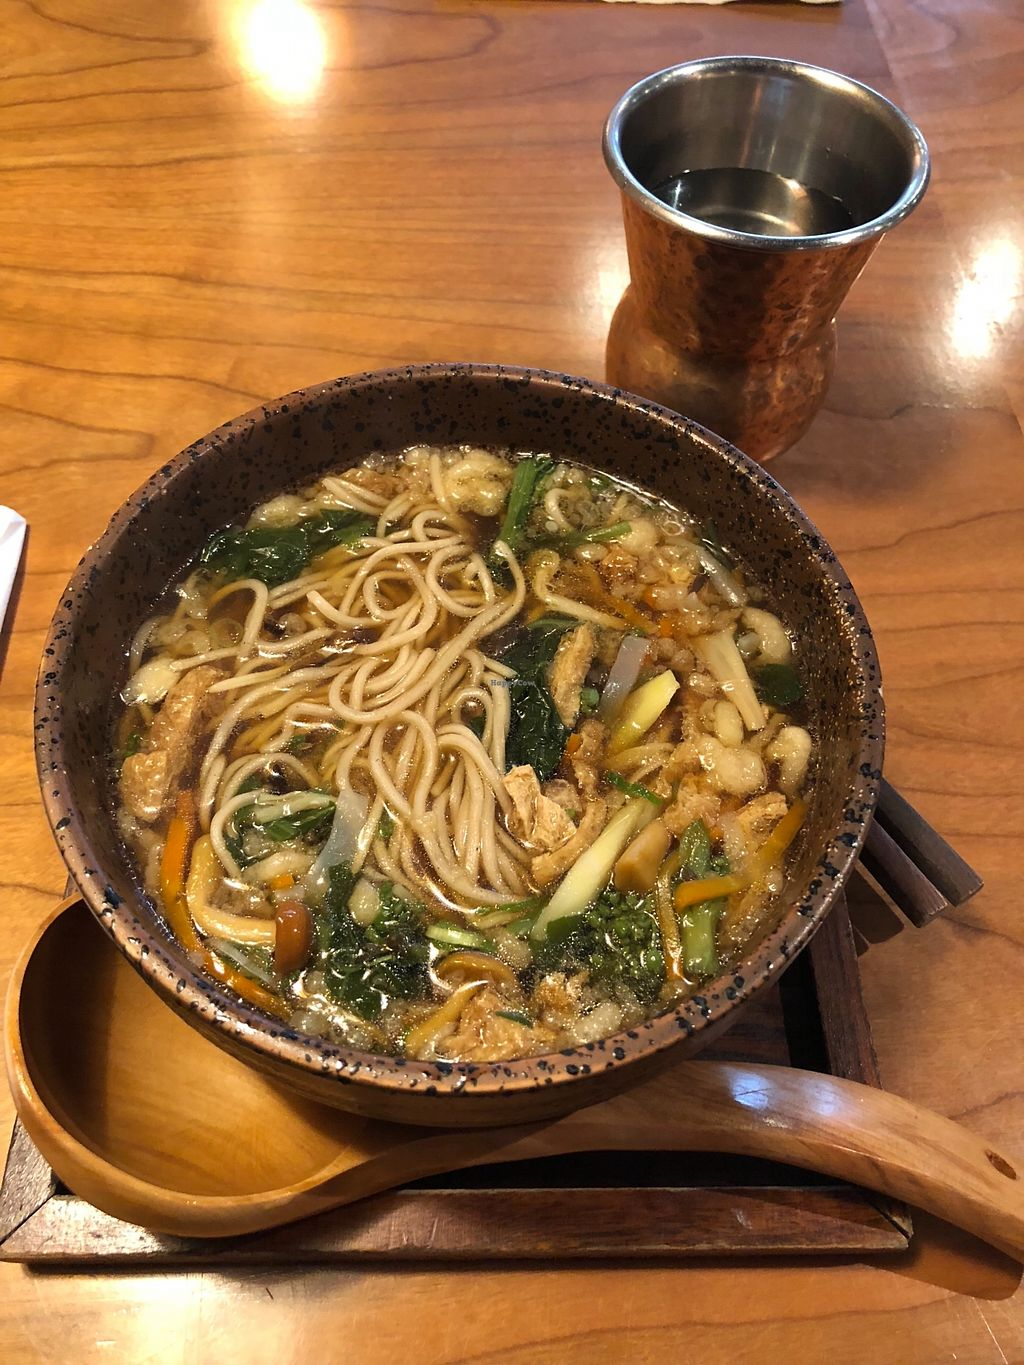 """Photo of Cocoron  by <a href=""""/members/profile/Sierra7"""">Sierra7</a> <br/>Soba with tofu skin <br/> April 5, 2018  - <a href='/contact/abuse/image/116765/381076'>Report</a>"""